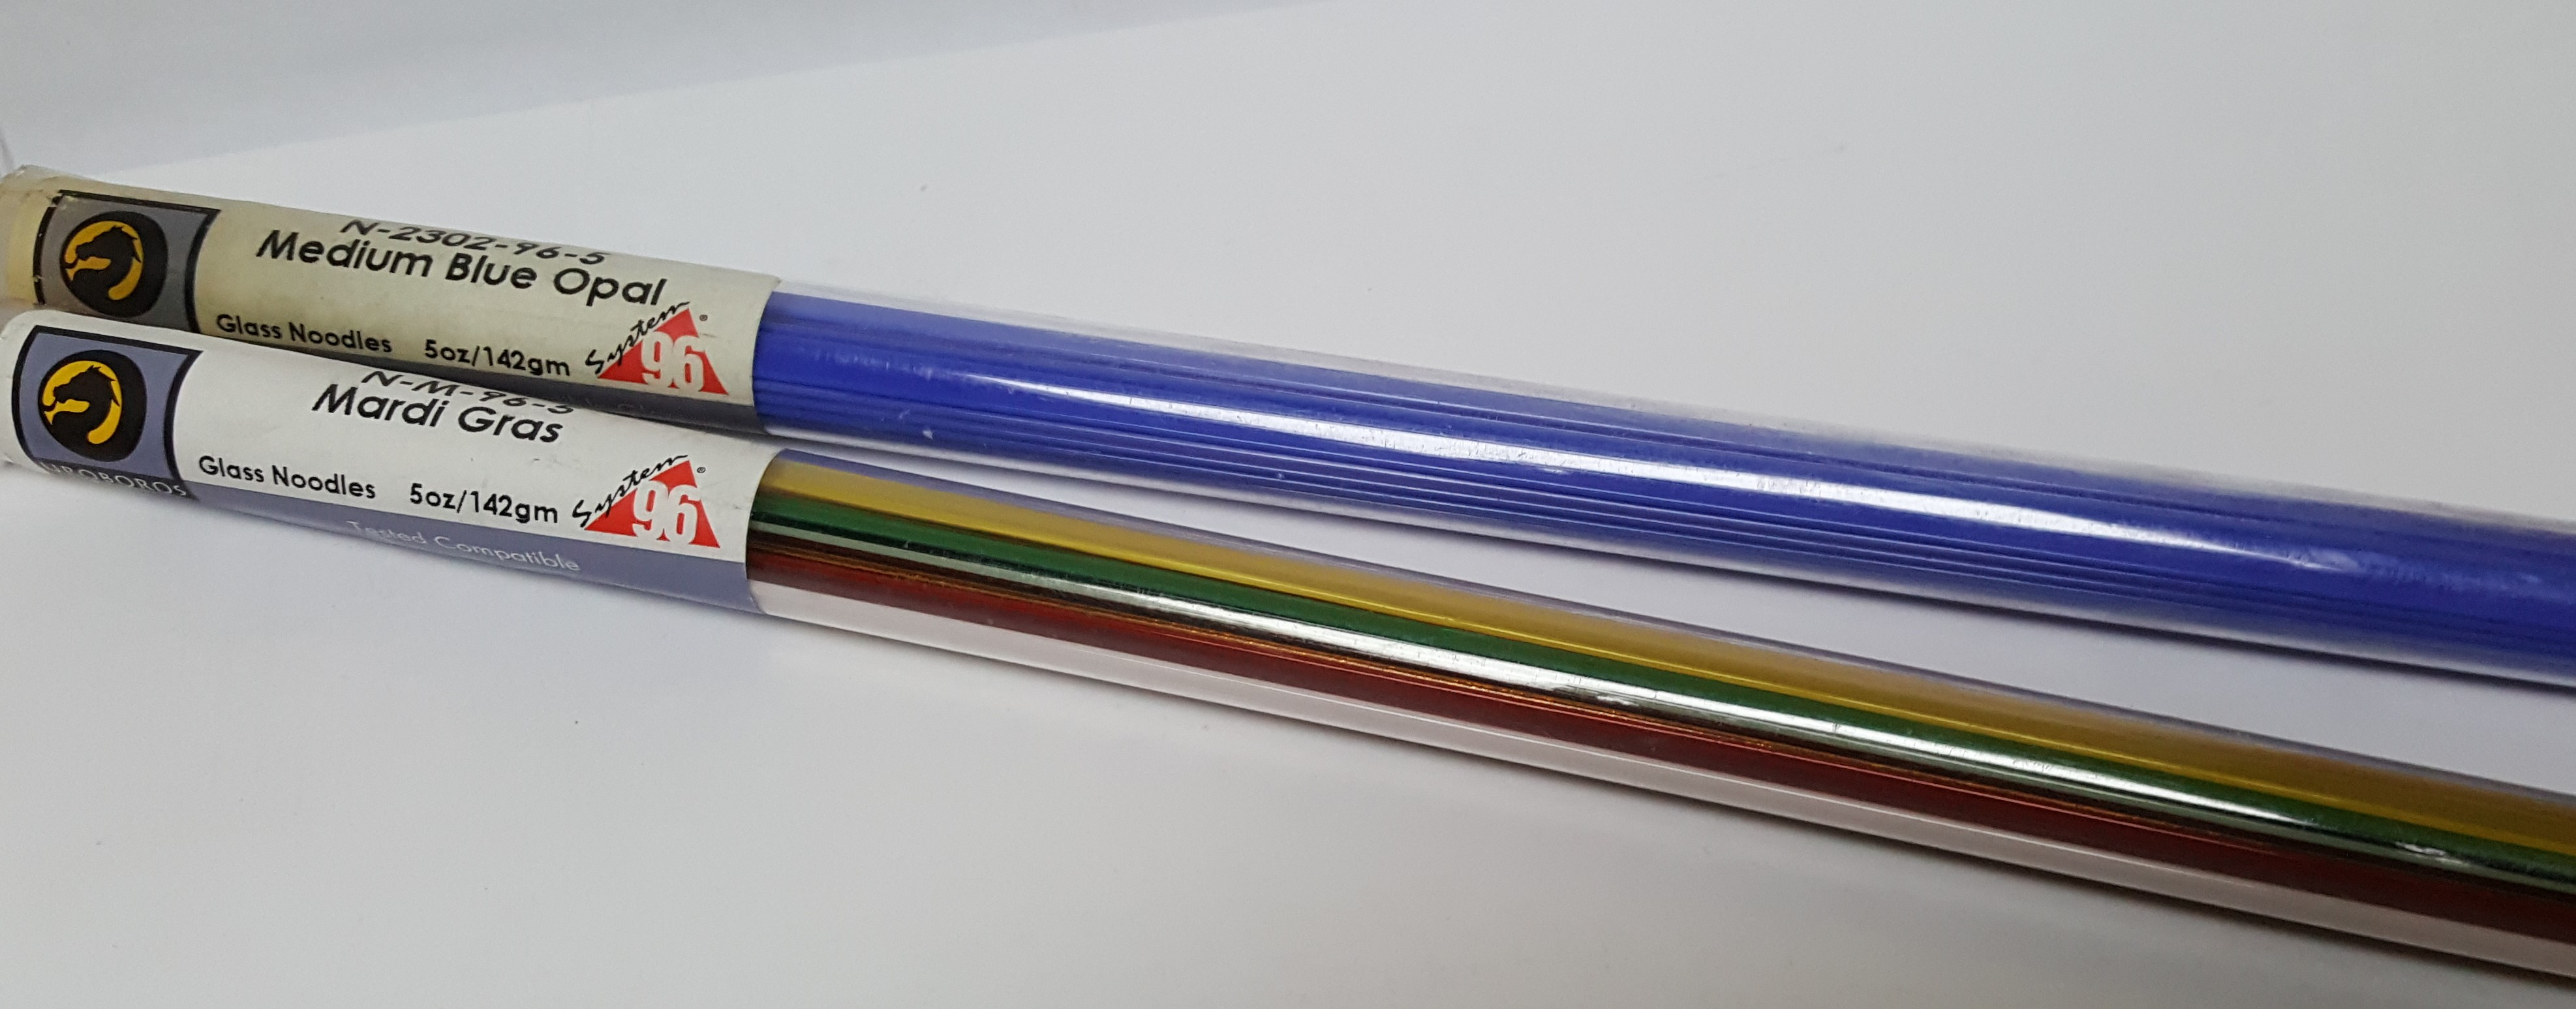 Spectrum 96 Fusible Glass Noodles